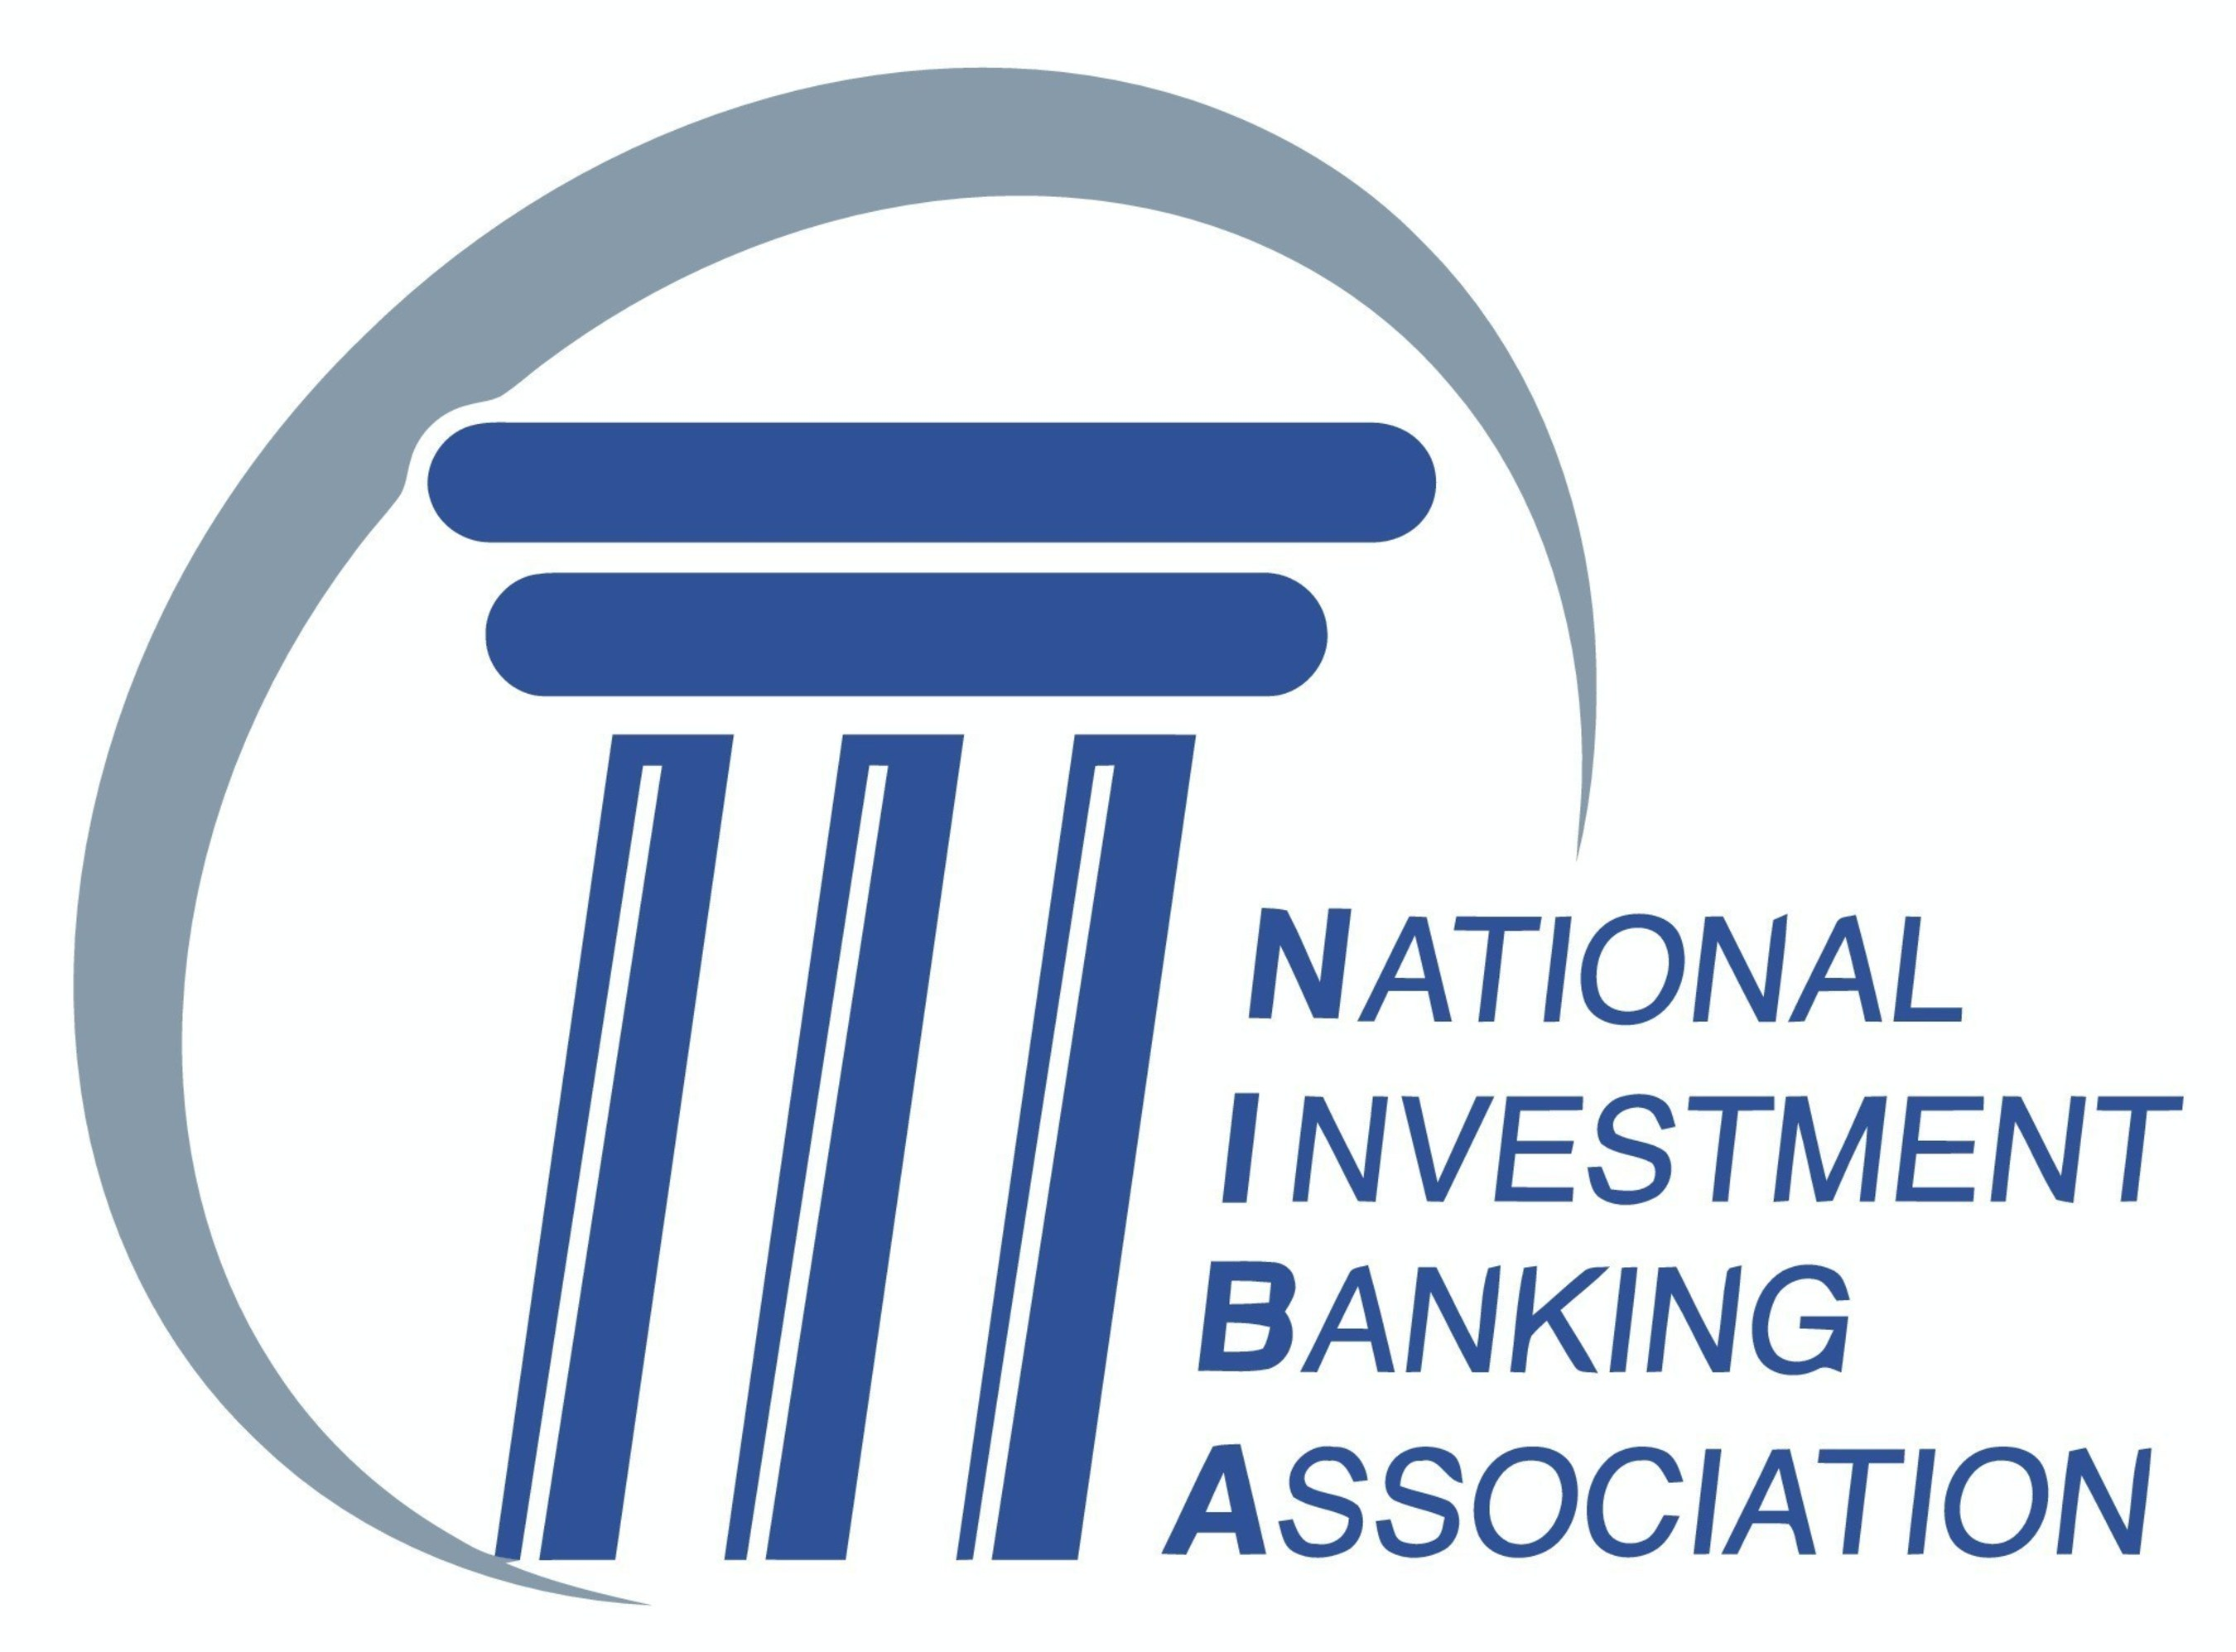 National Investment Banking Association Logo.